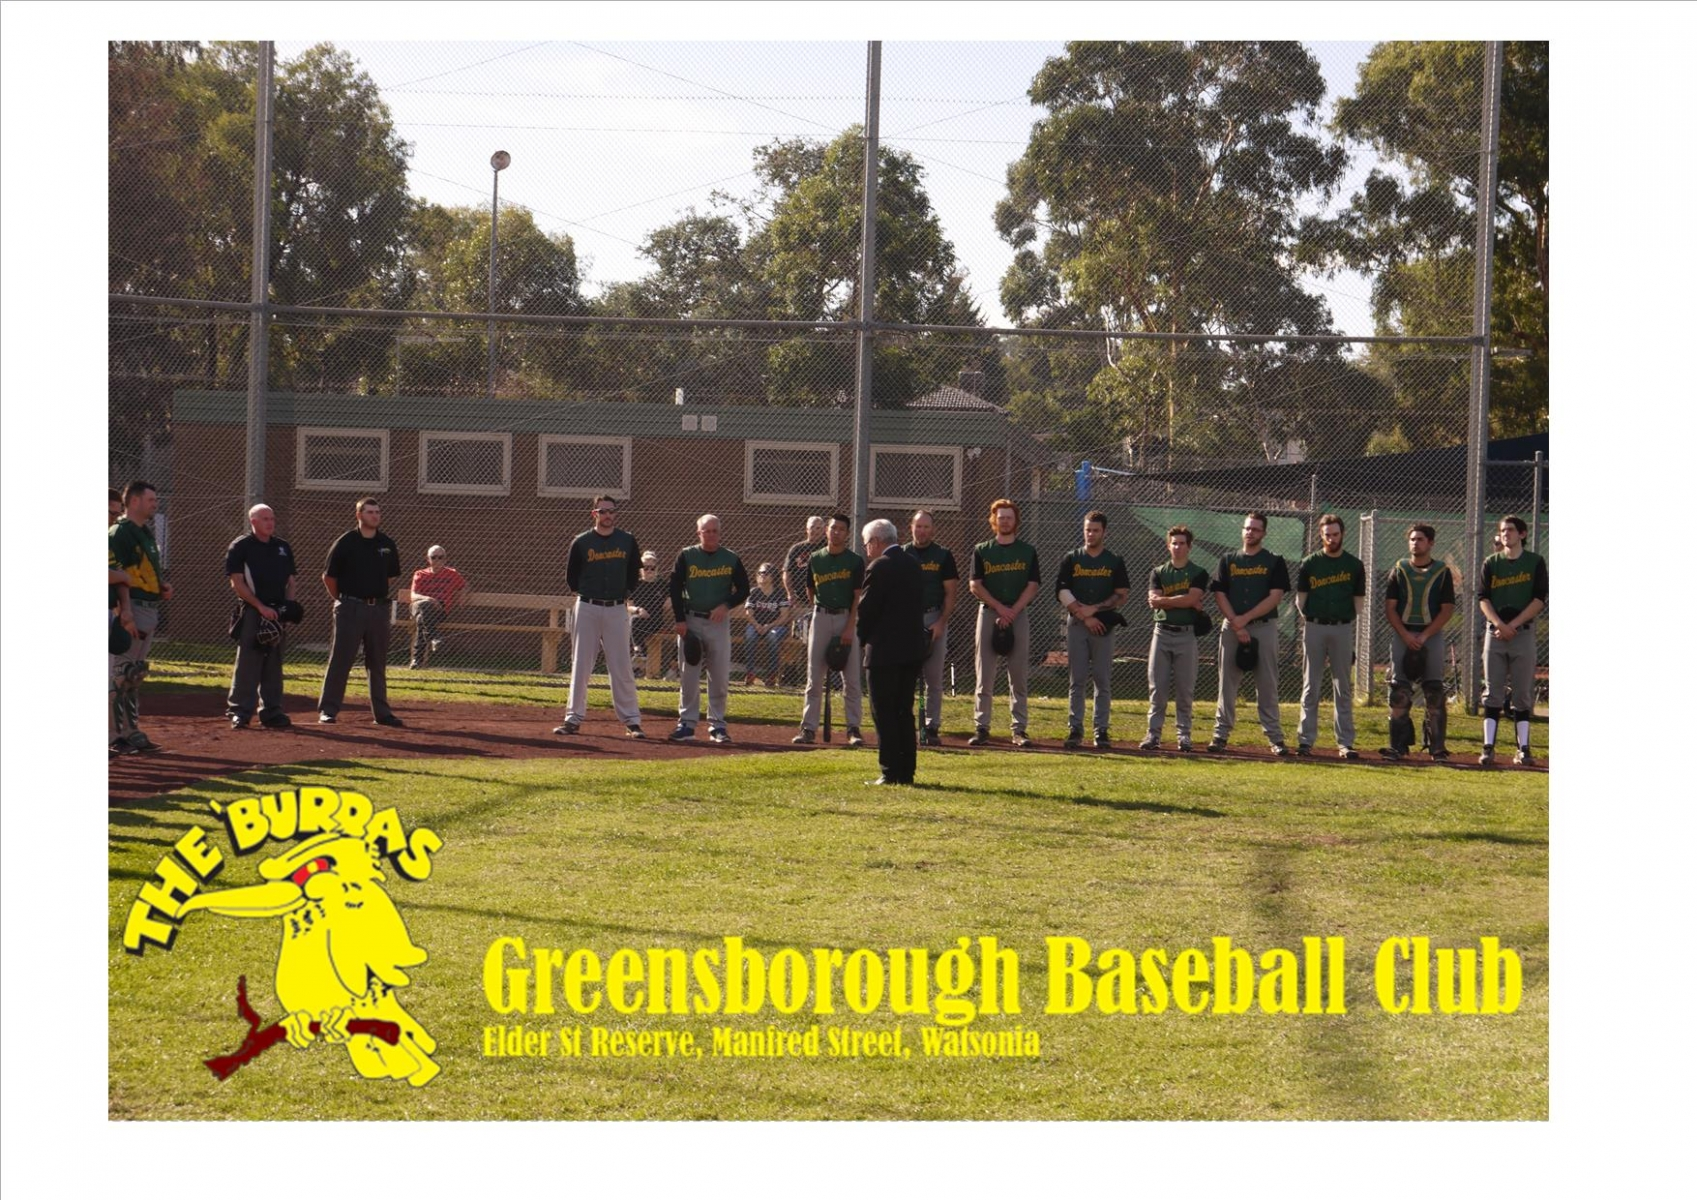 Greensborough_Baseball_Club